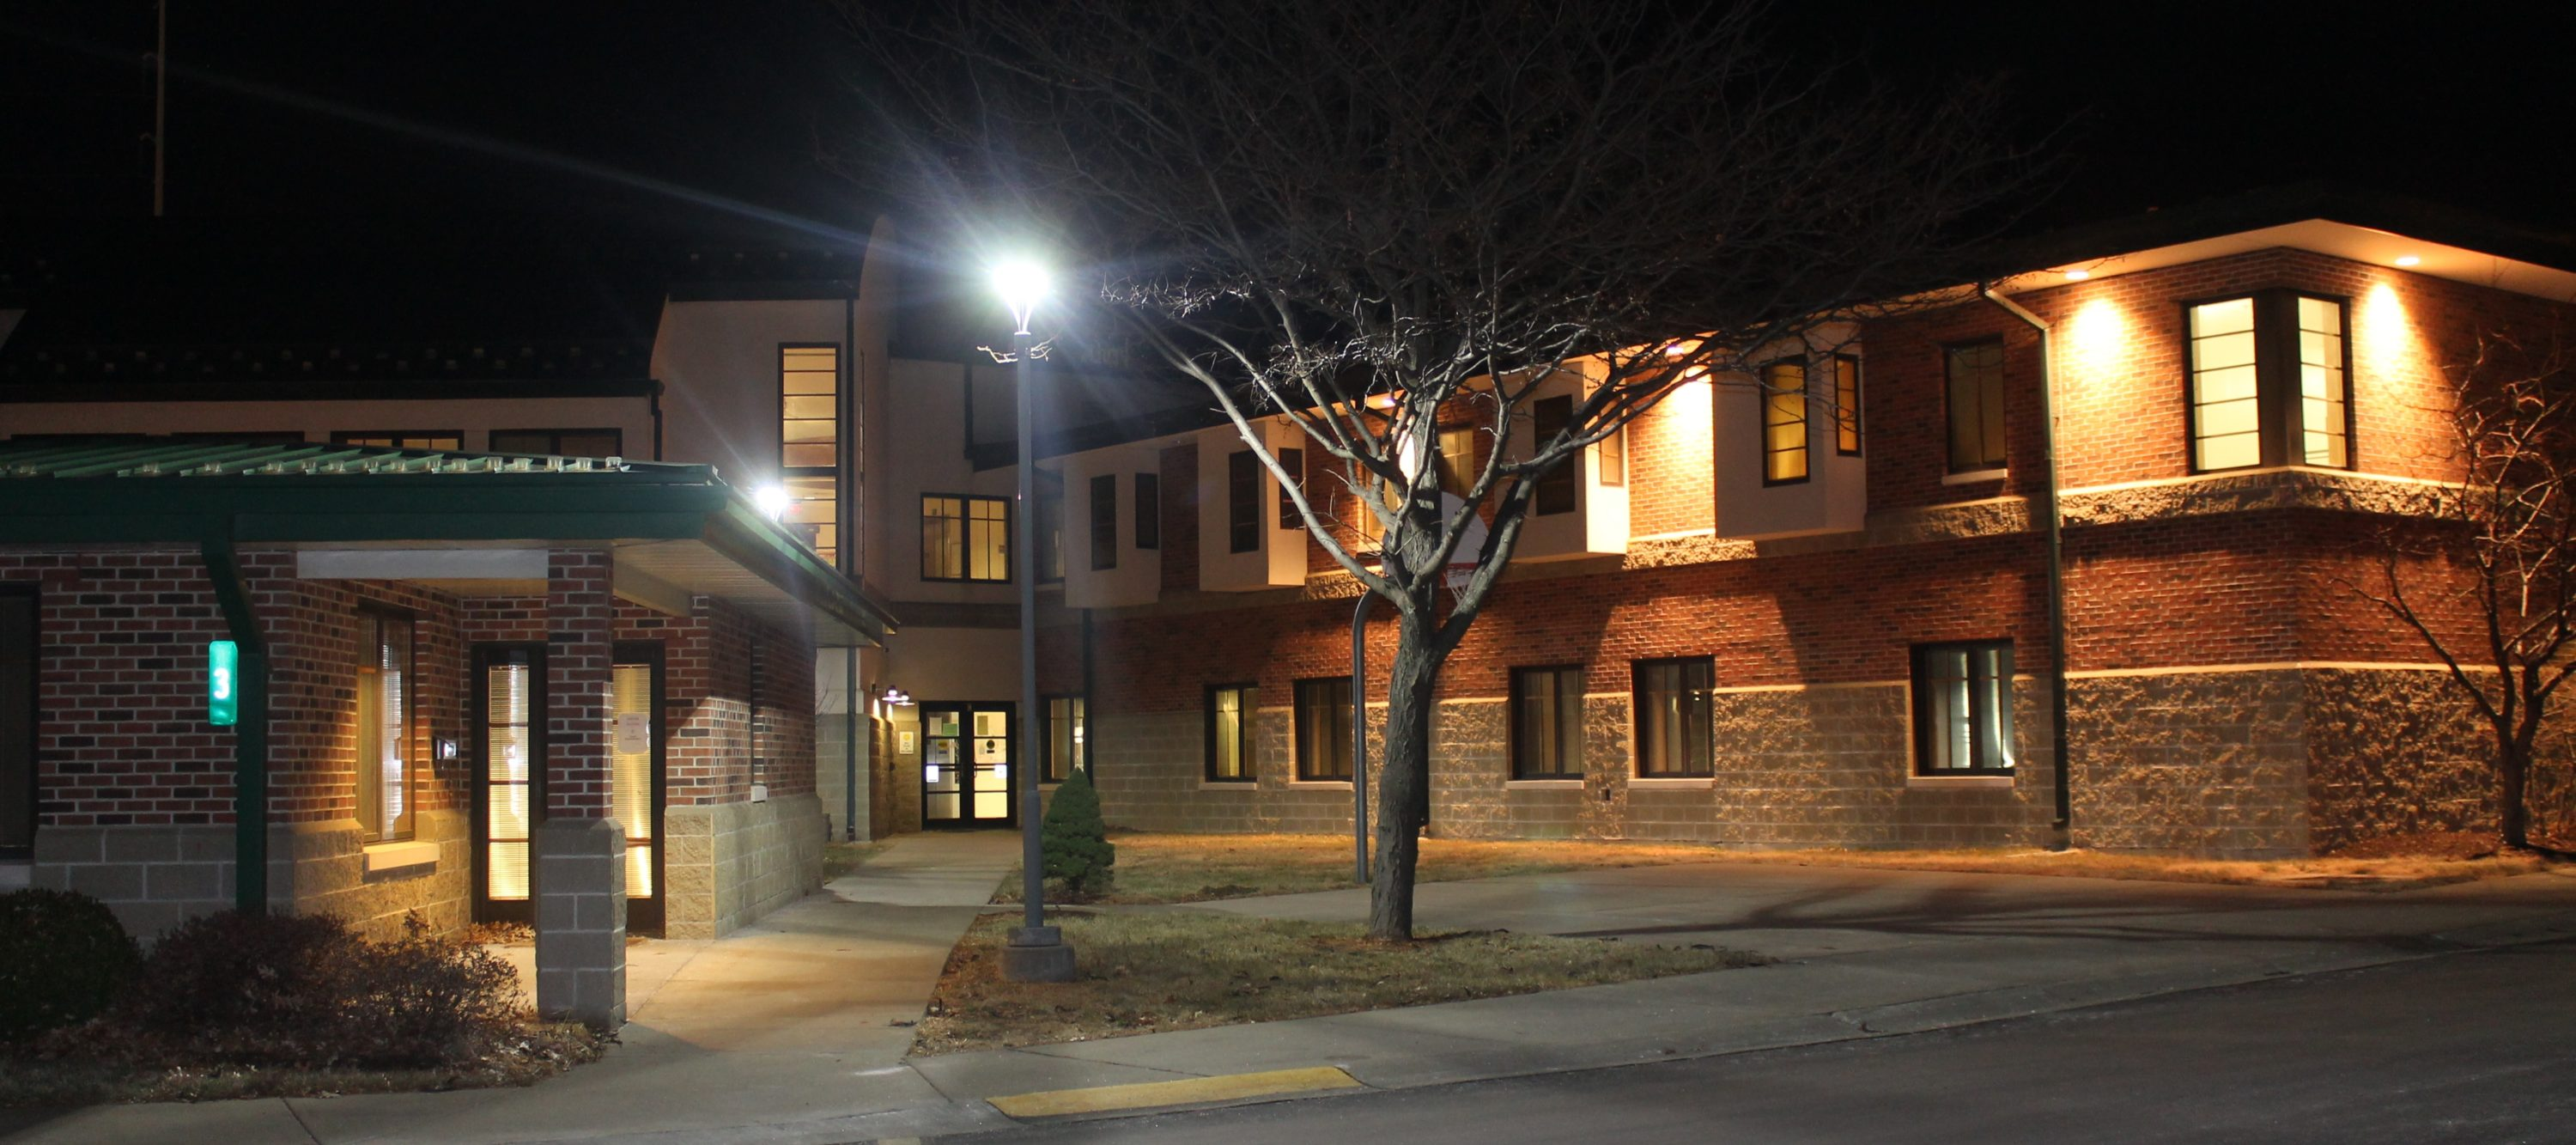 Image of Residence Hall at Night. A large 2 story building with 2 trees and a light pole in front. Light from windows and outdoor lighting shine in the darkness.